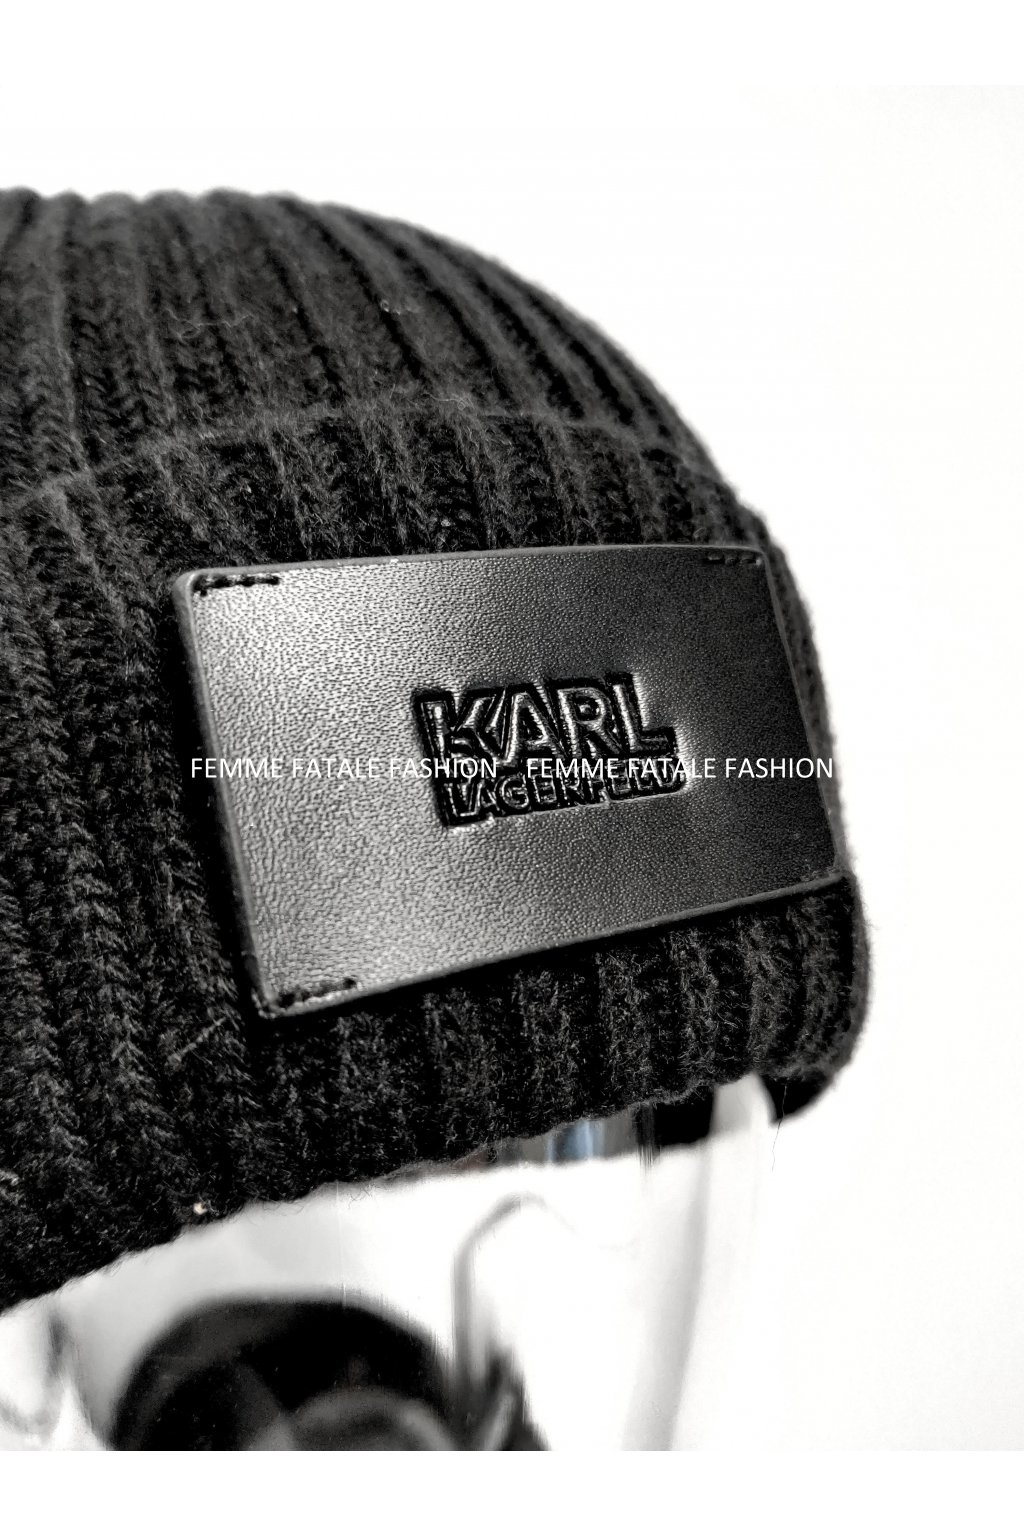 Čepice Karl Lagerfeld Leather Patch Beanie femmefatalefashion (3)